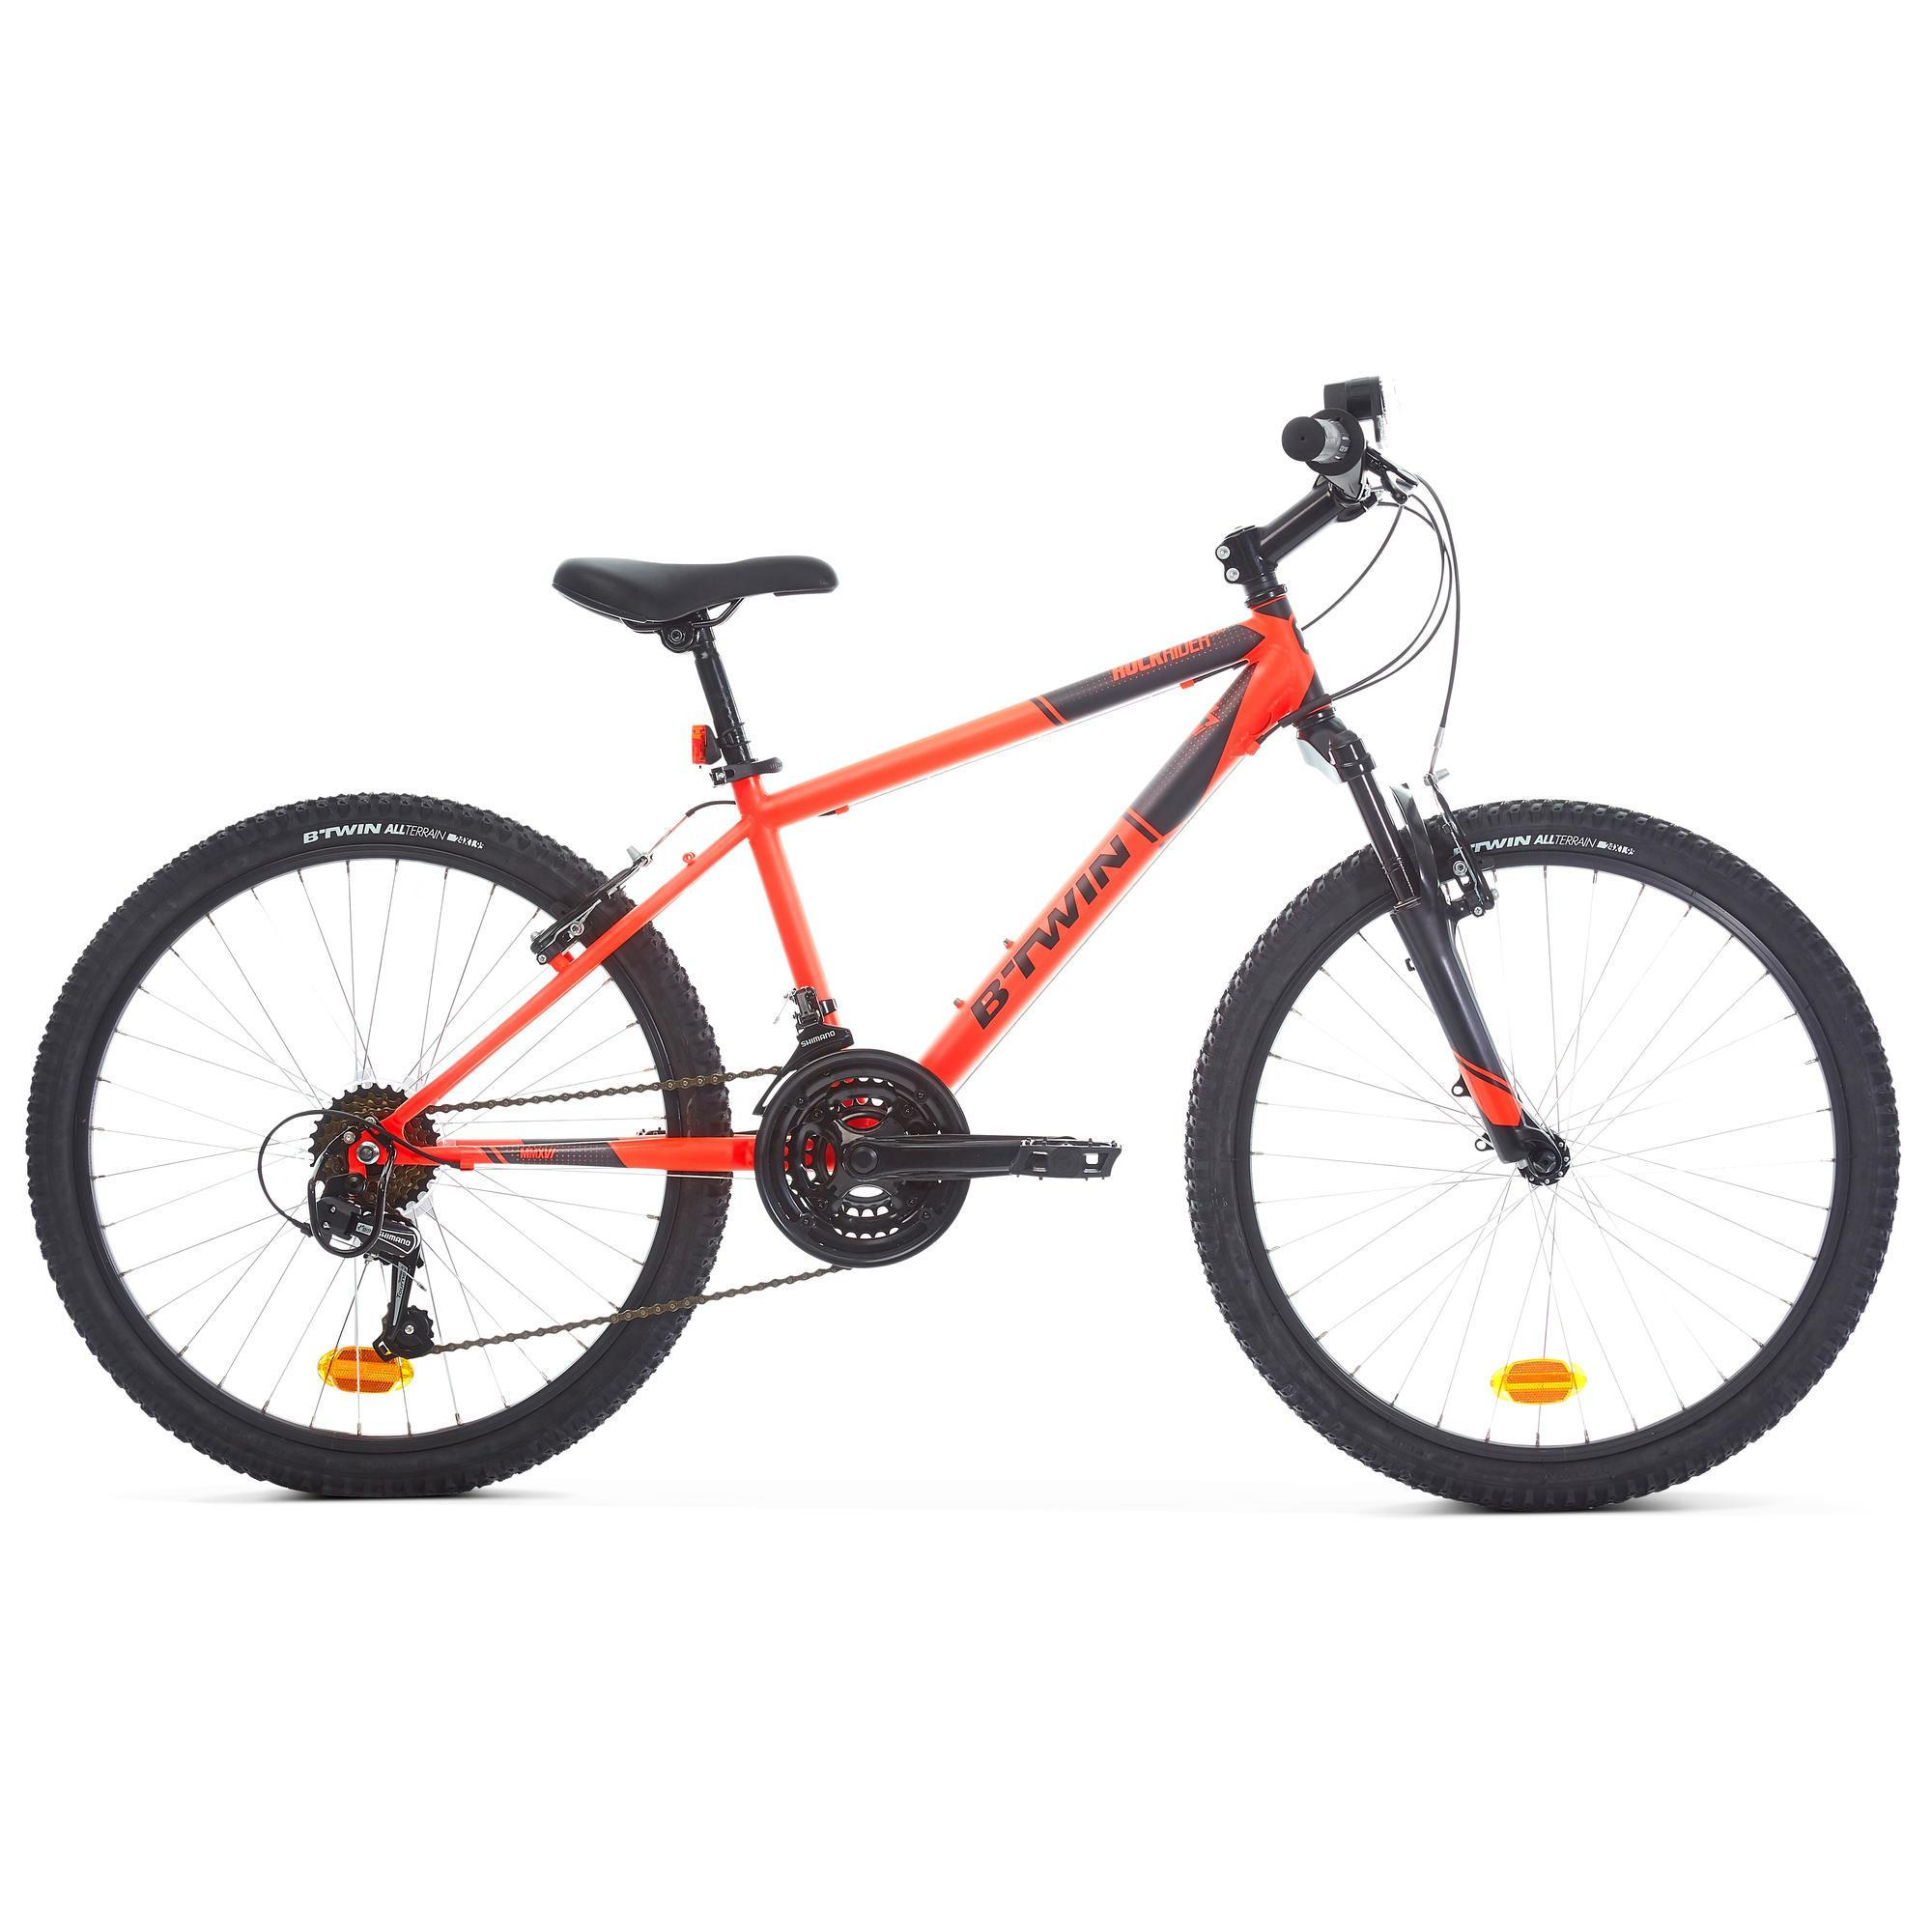 mountainbike 24 rockrider 500 kinder b 39 twin decathlon. Black Bedroom Furniture Sets. Home Design Ideas